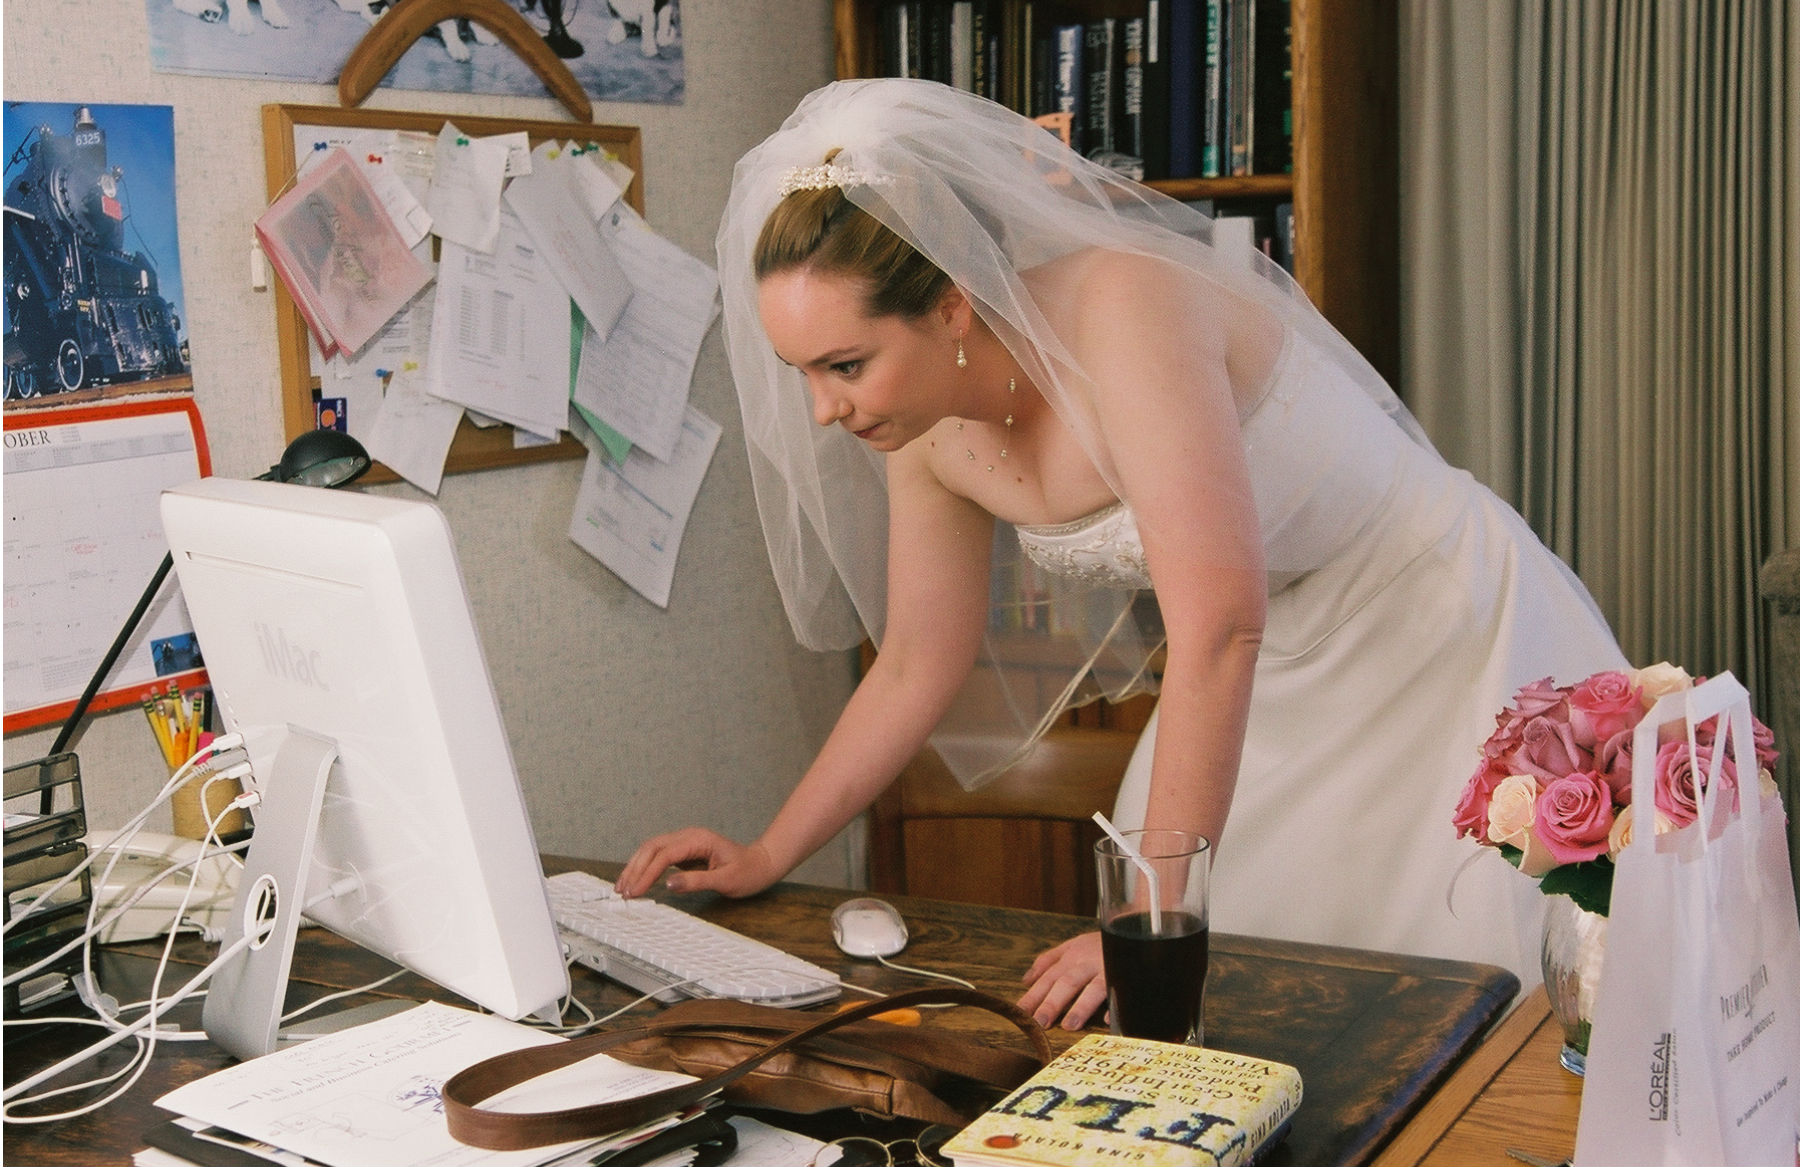 Group shopping online wins big with brides